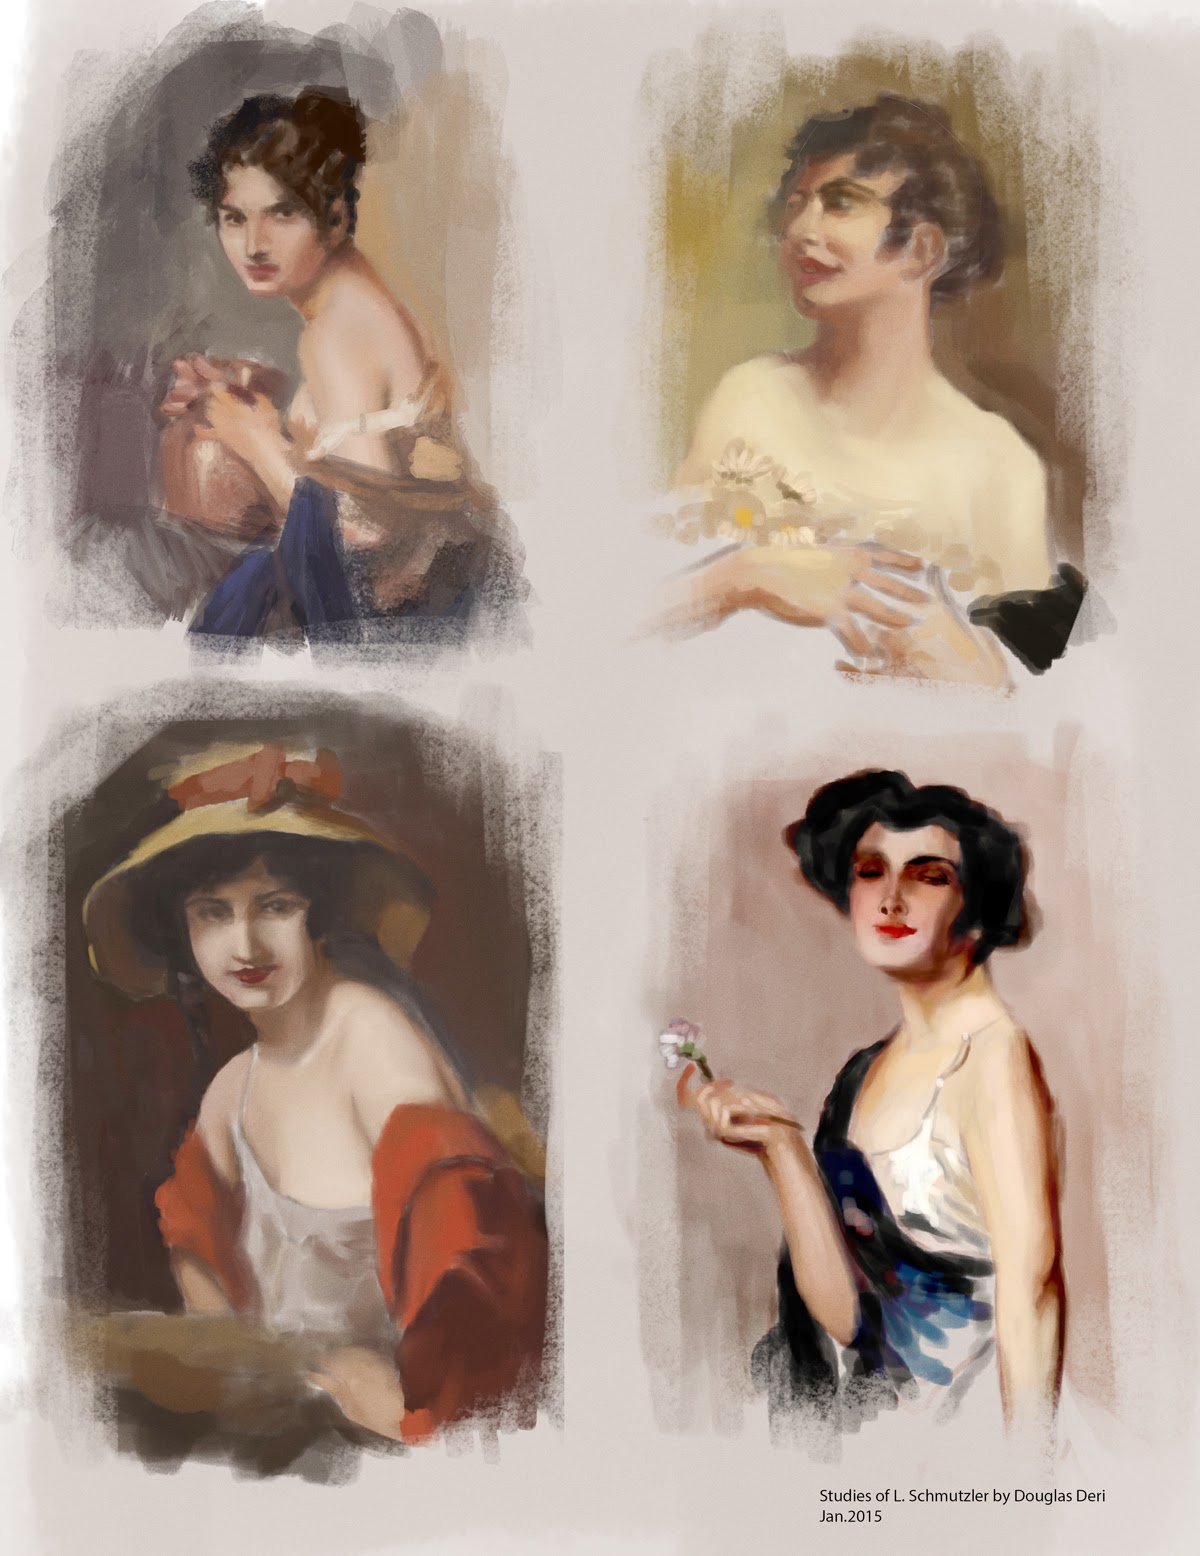 douglas deri, studies, sketchbook, fineart,how to paint, photoshop brushes, brushes, how to draw, como desenhar,